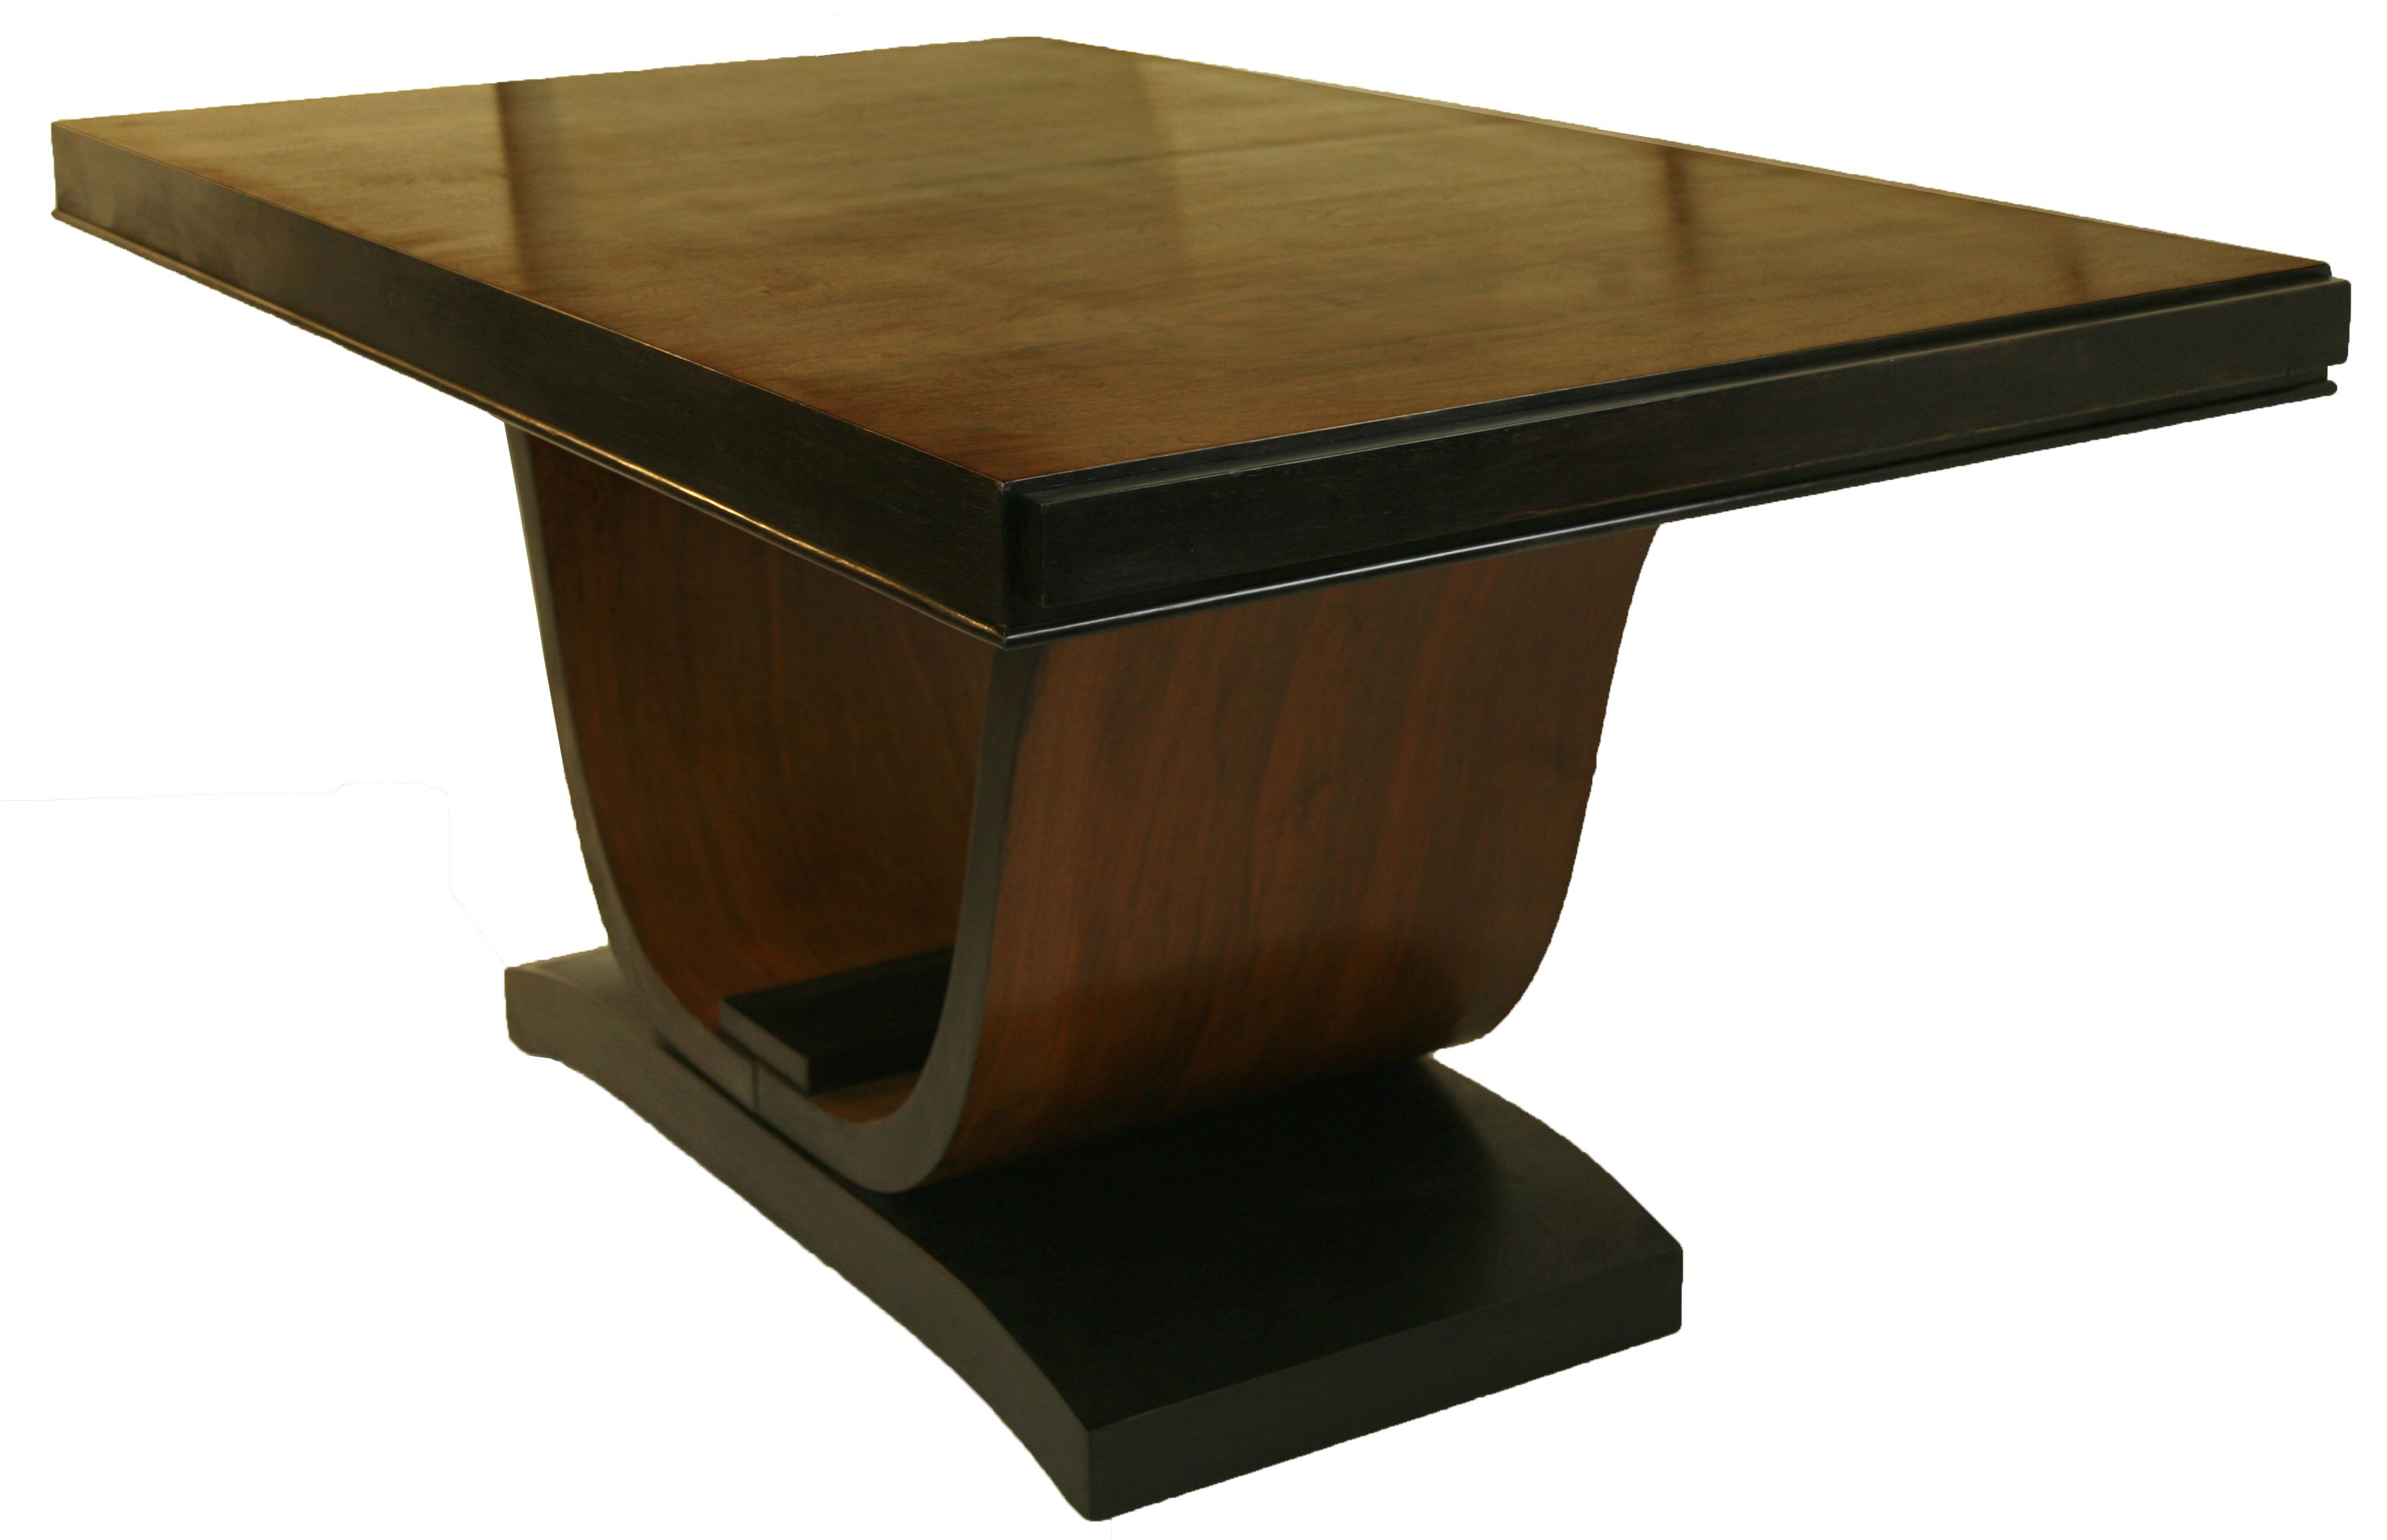 Dining Room Table Sculptures 2019 Art Deco Dining Room Wood Pedestal Table Base Dining Room Table